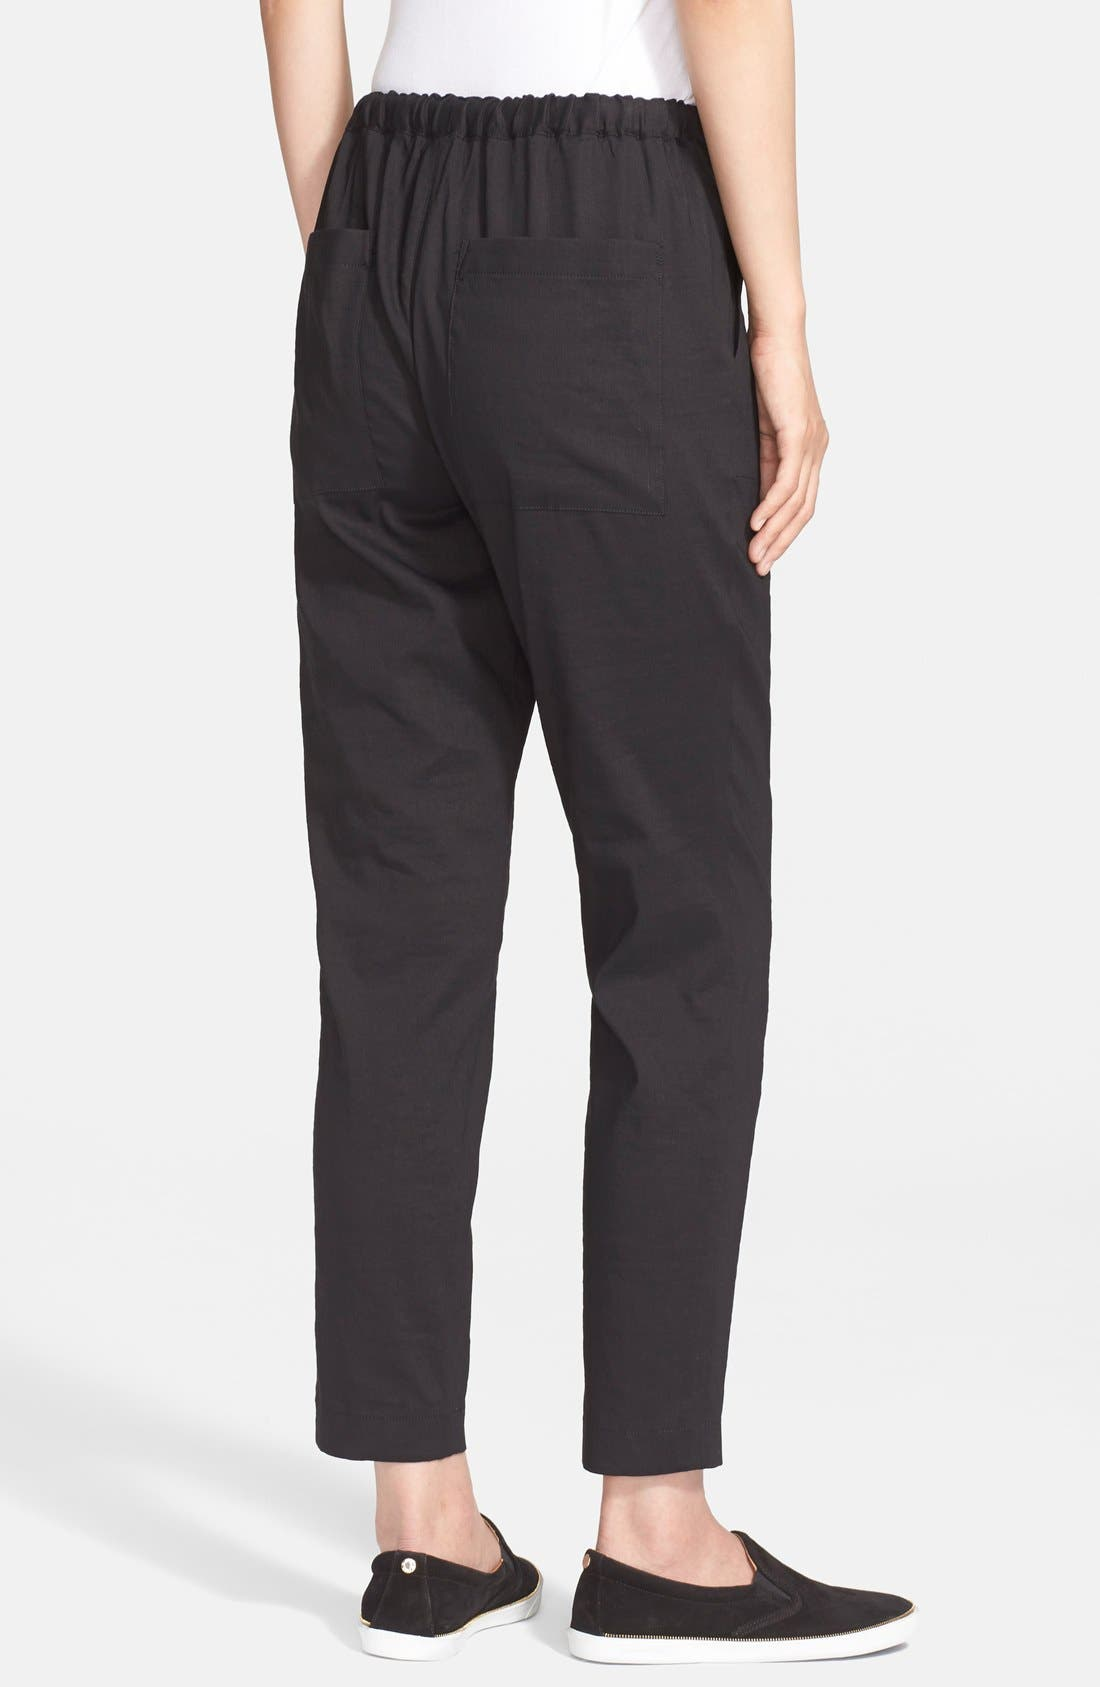 THEORY,                             'Altrino' Pants,                             Alternate thumbnail 3, color,                             001